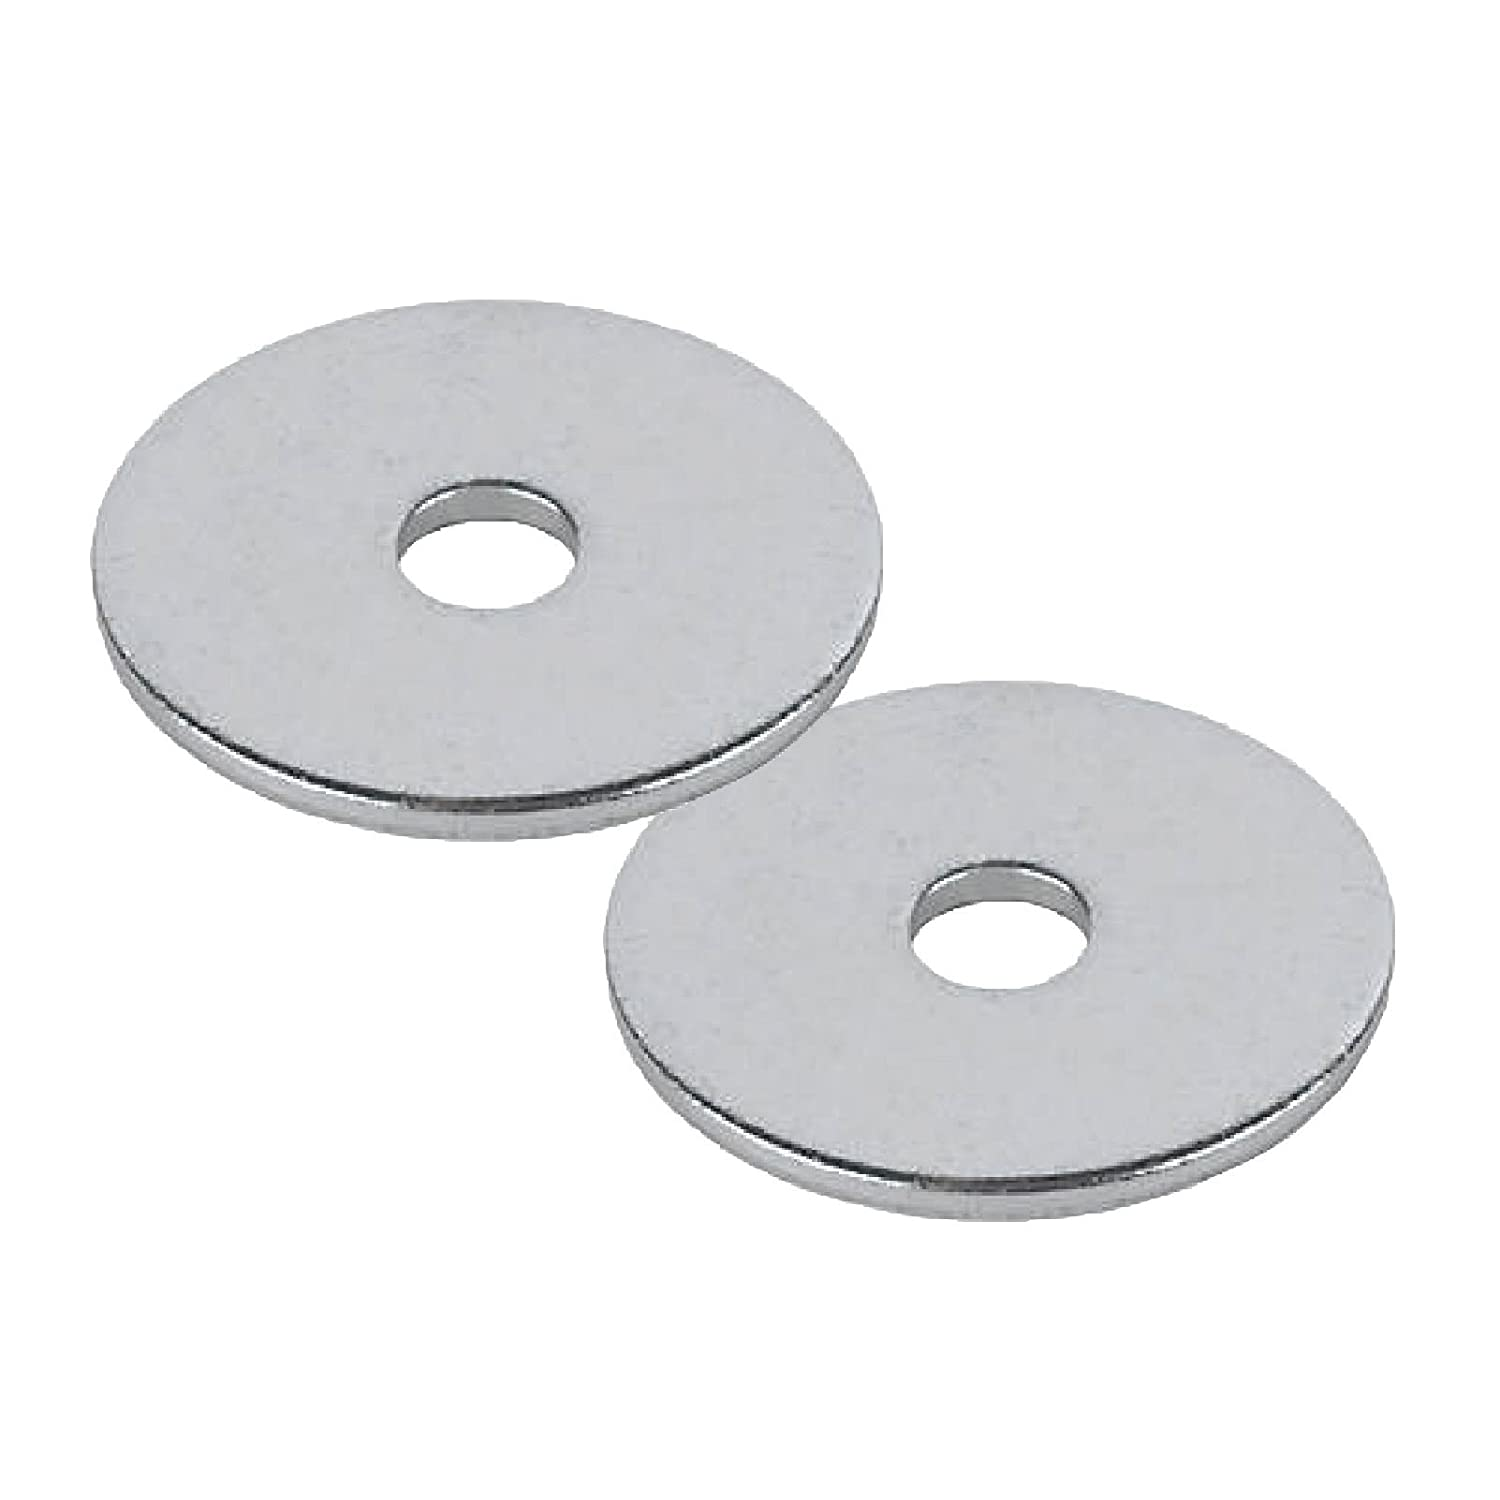 25 x Steel Backing Washers for 4.8mm Blind Pop Rivets M5 x 25mm Bright Zinc Plated Home.smart